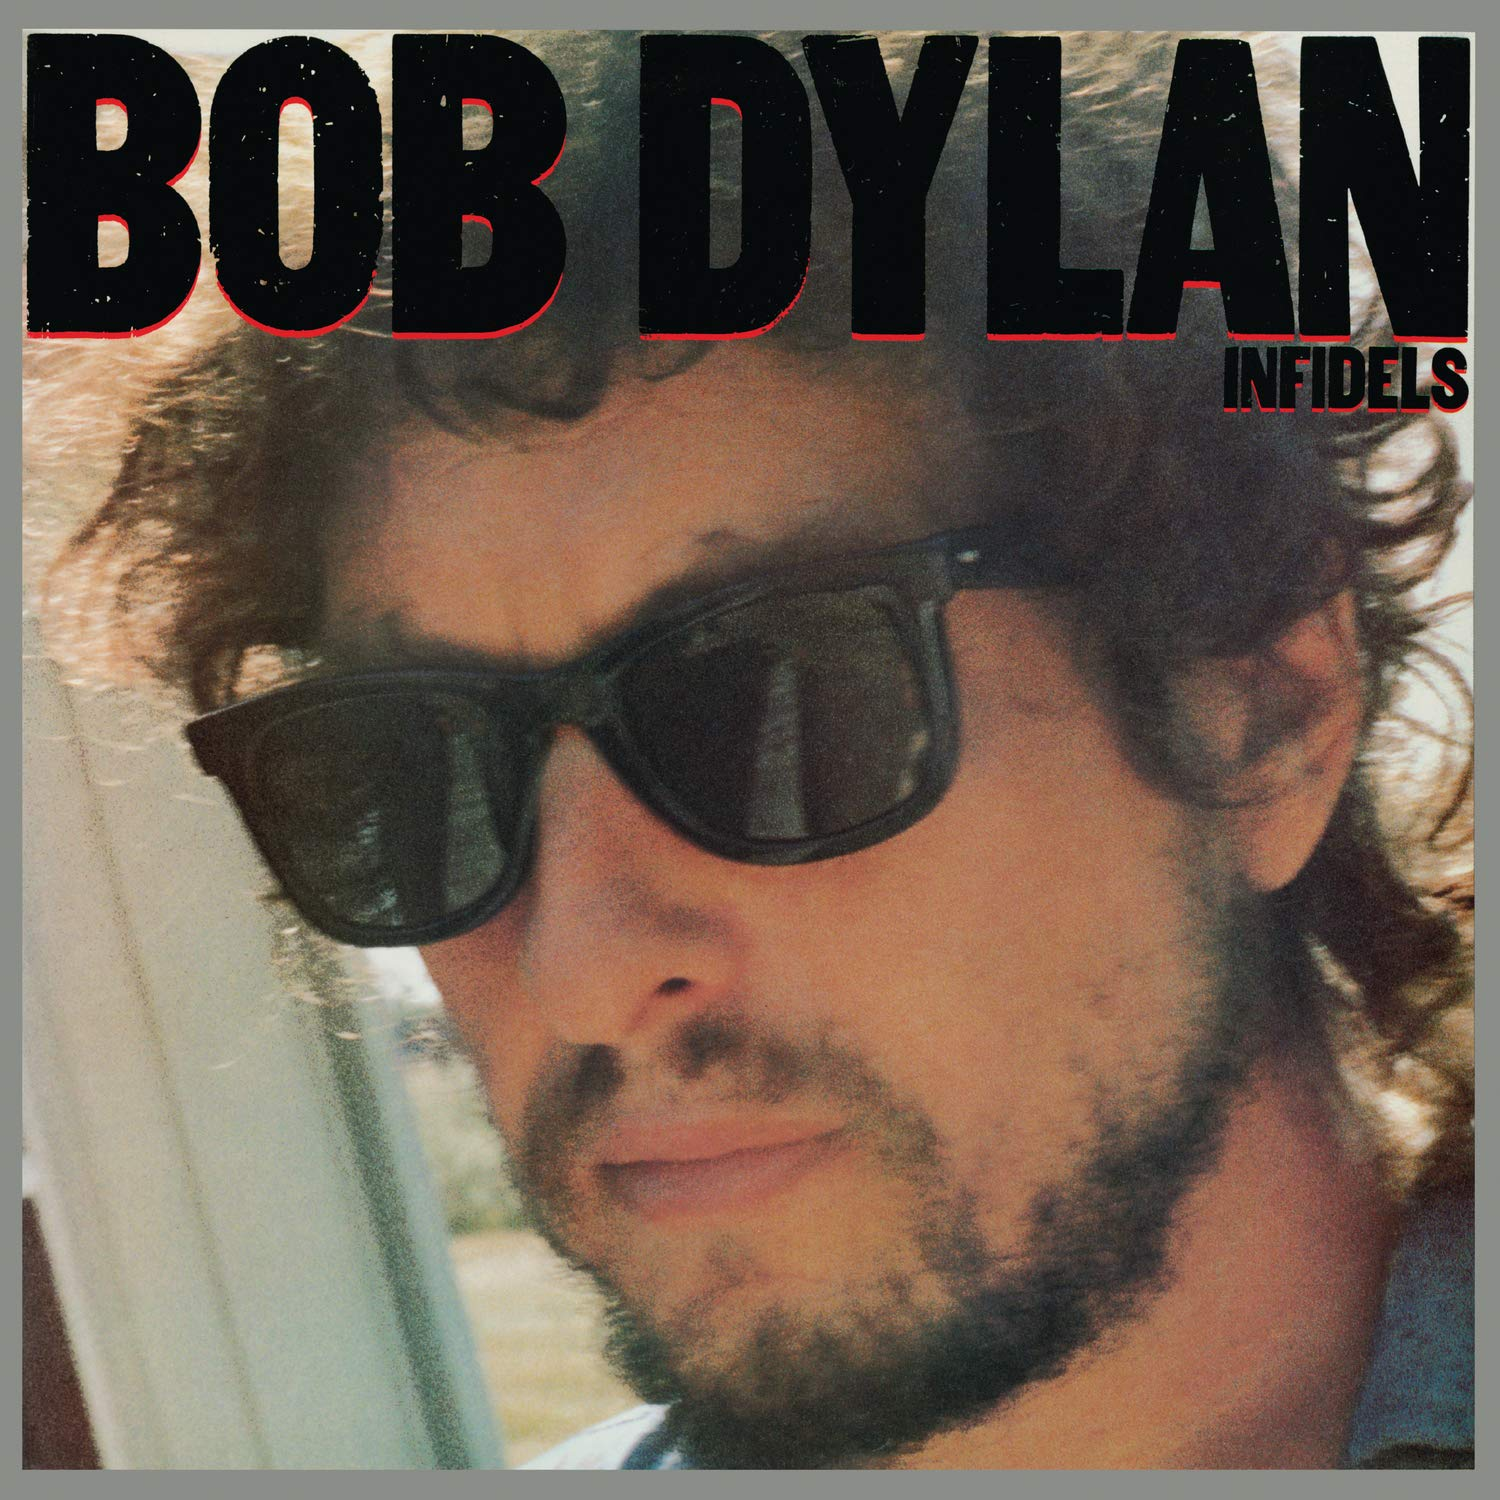 Bob Dylan - Infidels [Sony Gold Series]